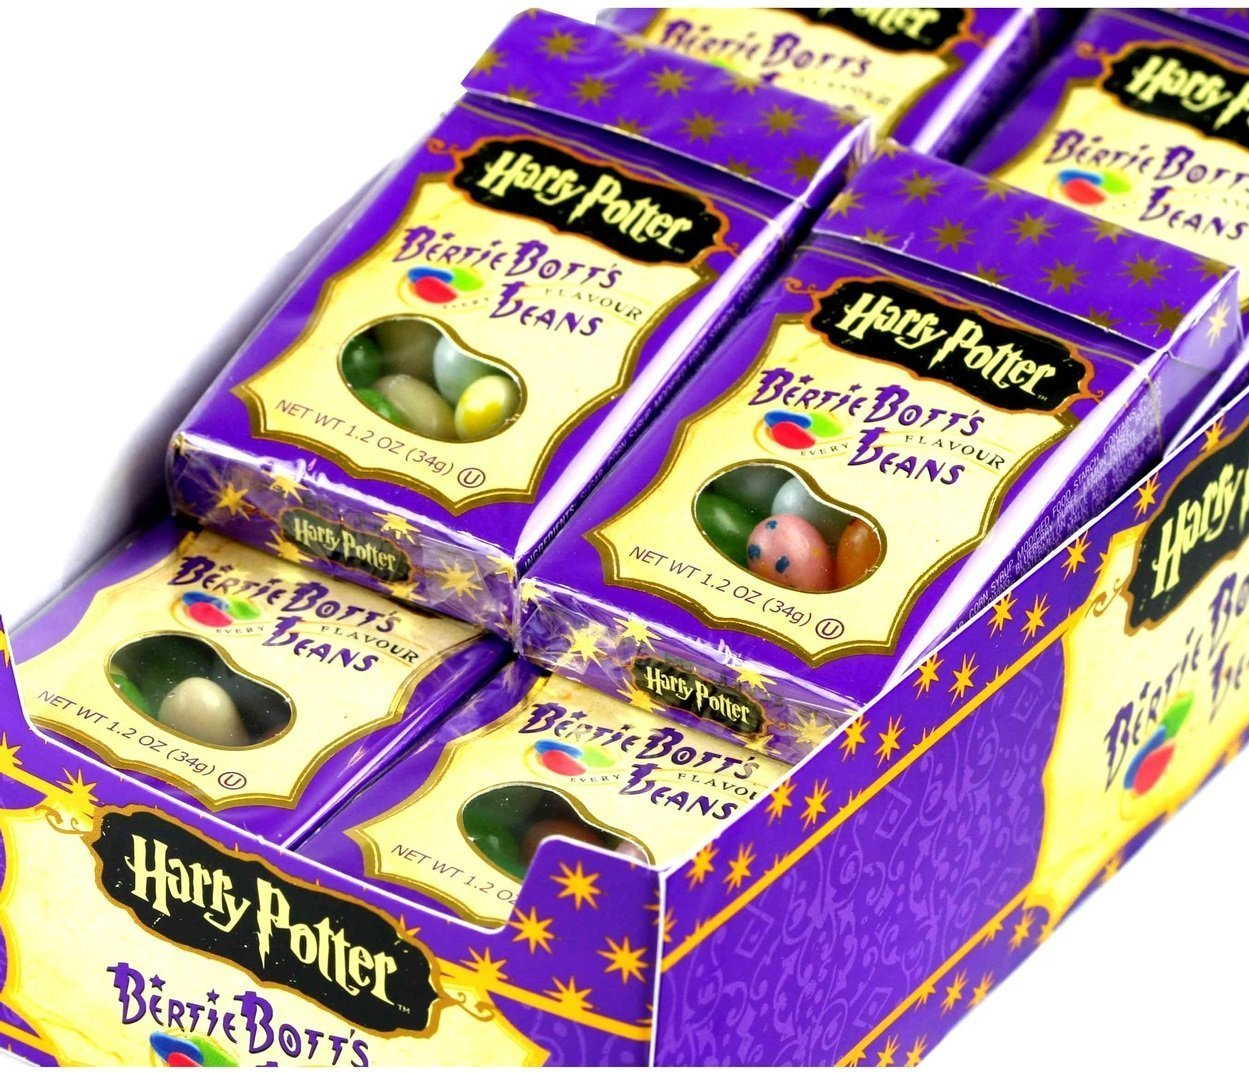 Bertie Bott's Every Flavour Beans - 1.2 oz boxes - 24-Count Case (Pack of 2) by Bertie Bott's (Image #2)